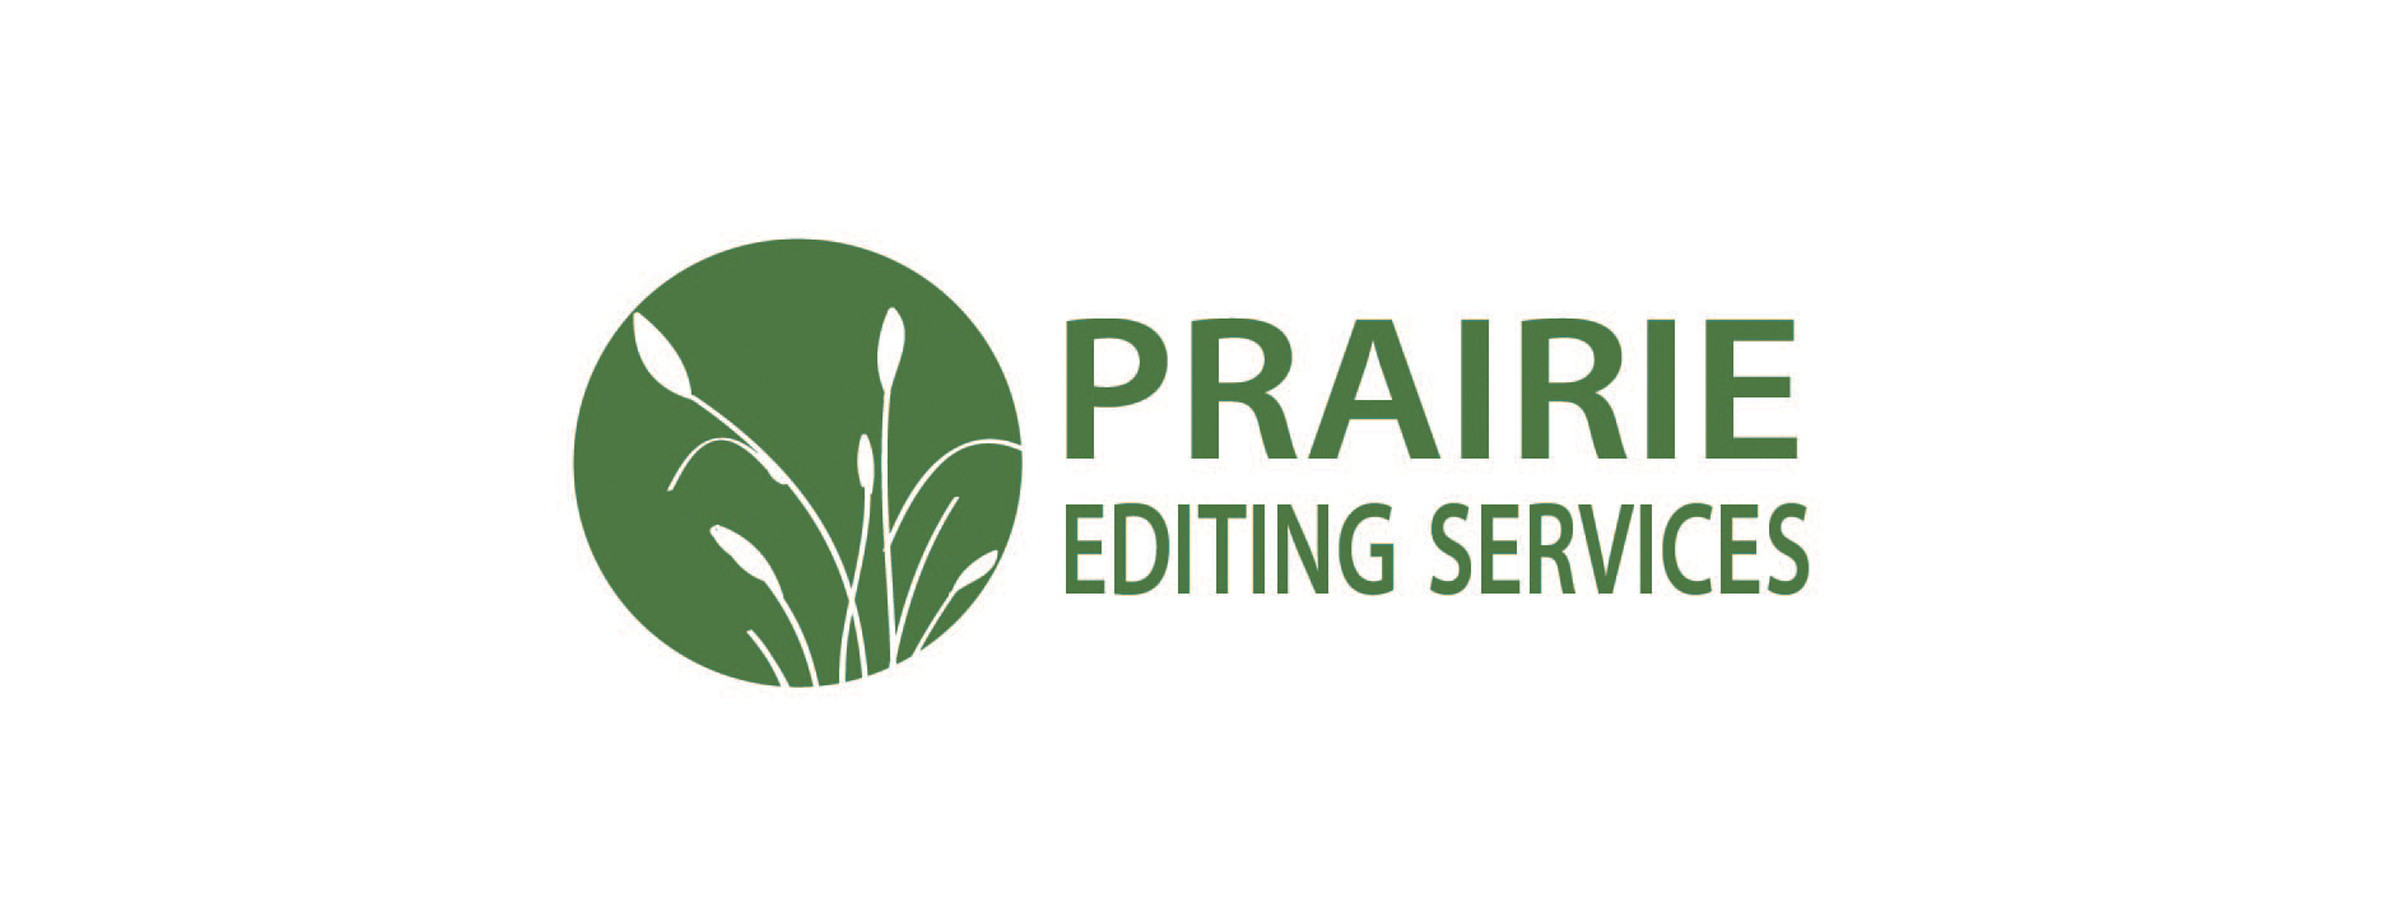 Prairie Editing Services